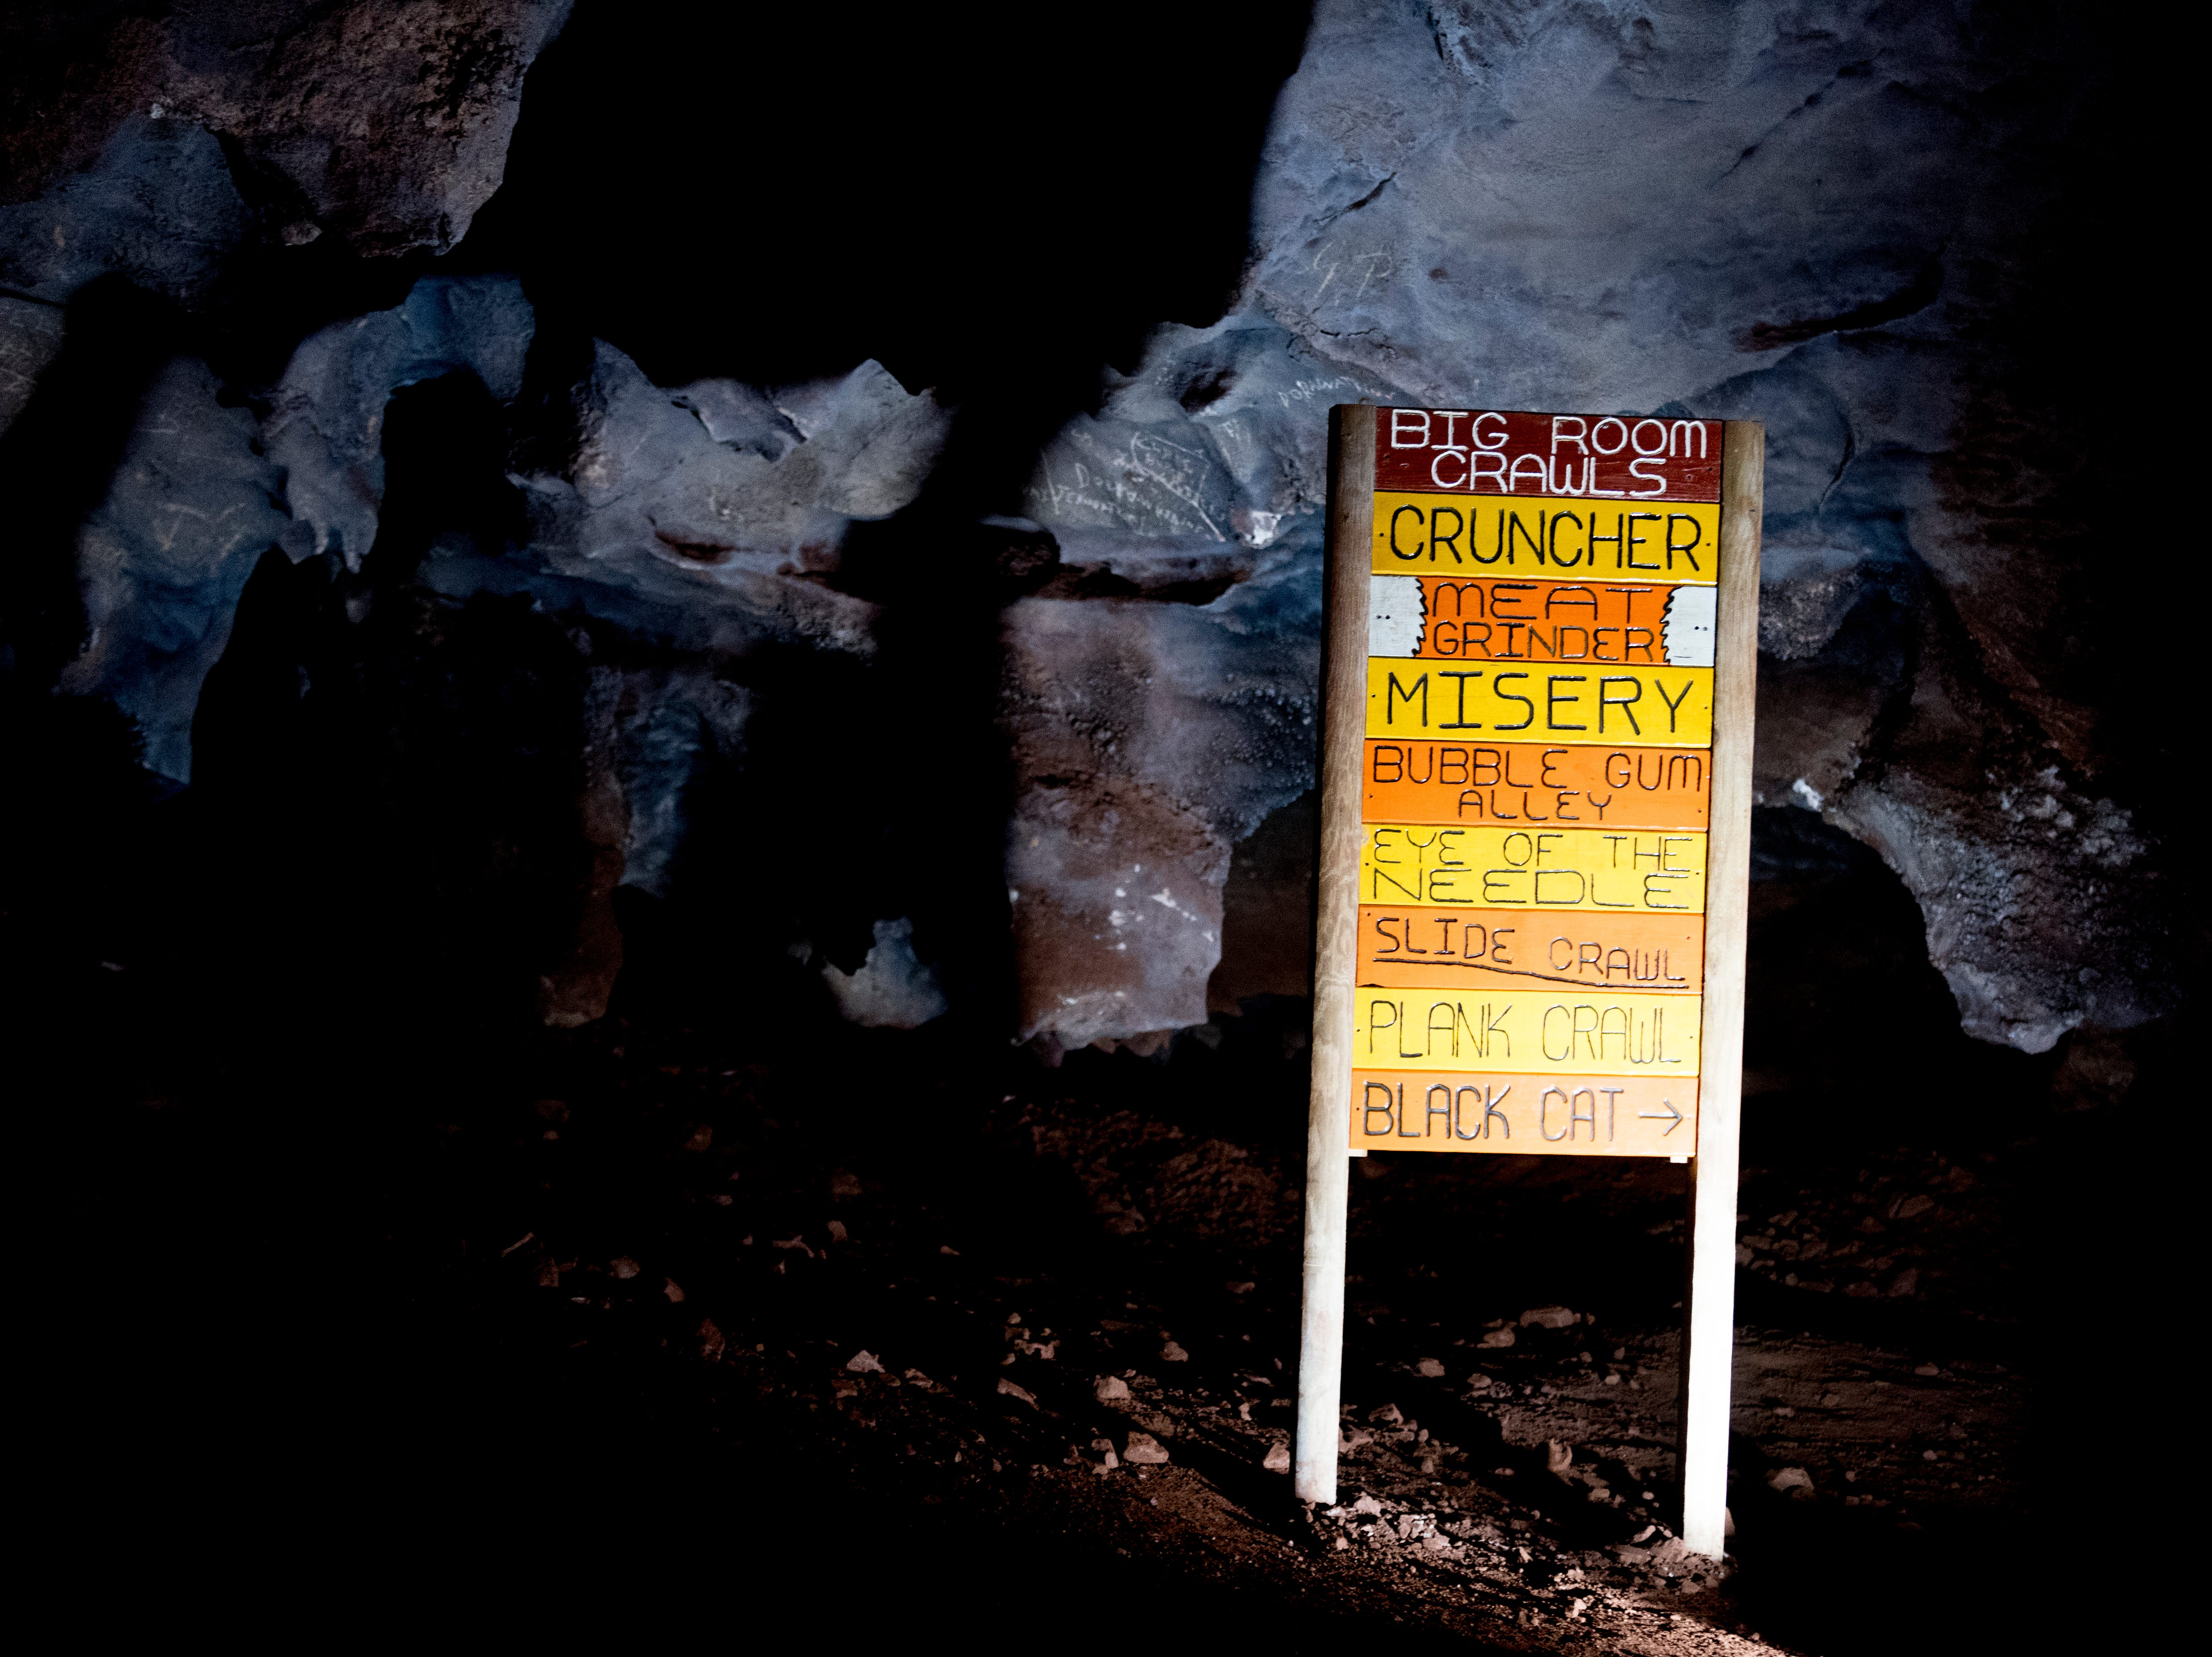 A sign at the Lost Sea Adventure underground cave attraction outside of Sweetwater, Tennessee on Wednesday, August 15, 2018. The cave system dates back some 20,000 years and today features points of interests like an old moonshine still, rock formations, Confederate Army graffiti and the popular boat ride in a natural lake stocked with 200 rainbow trout.